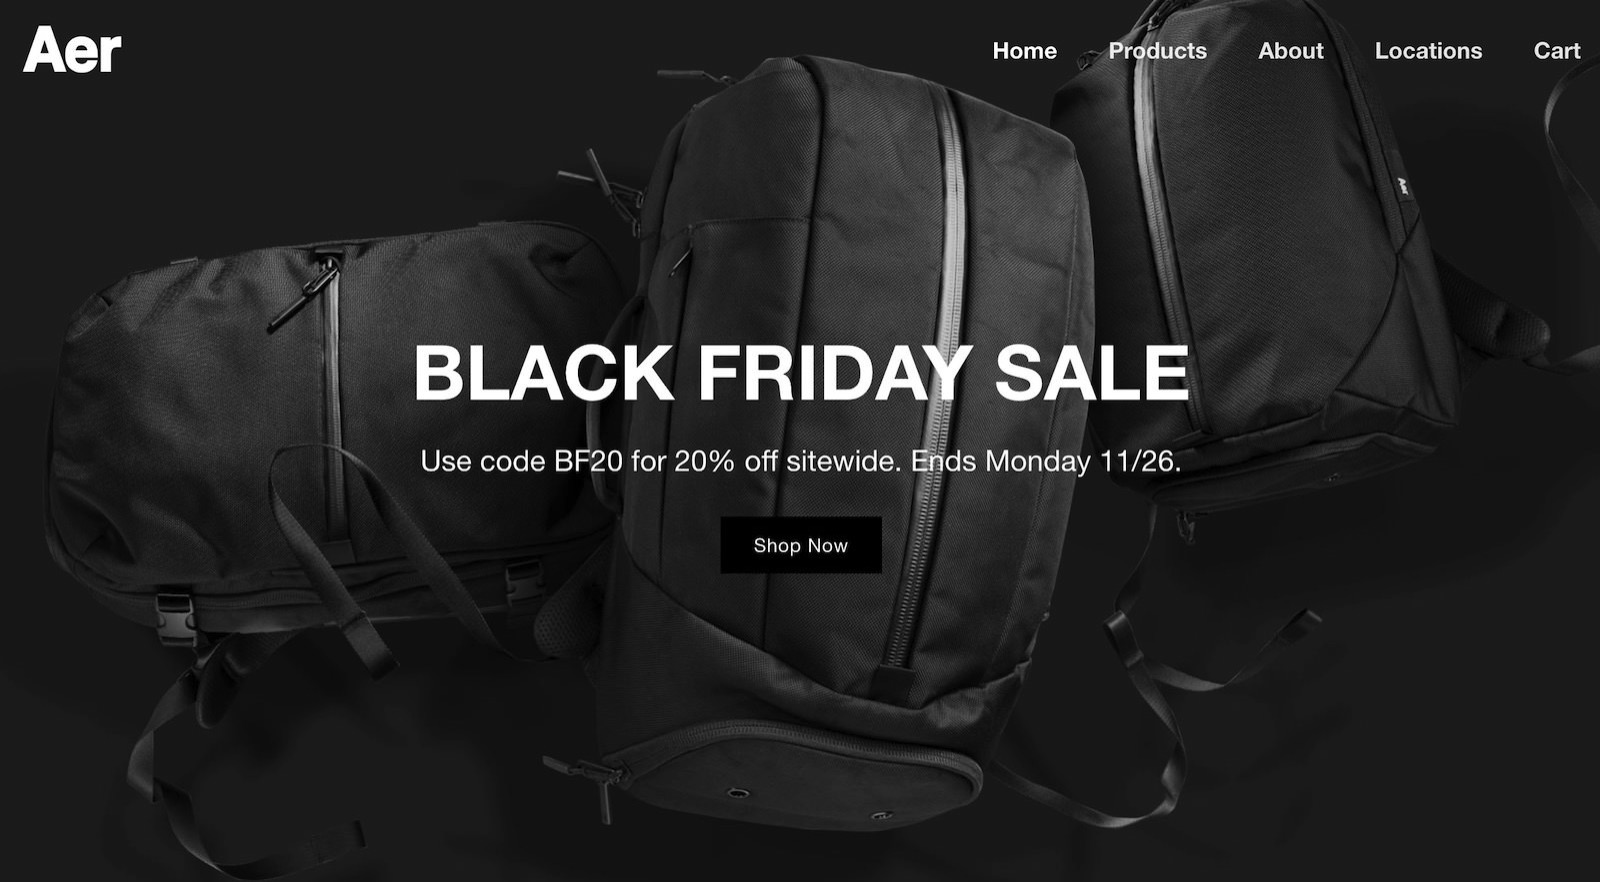 Aer Black Friday Sale